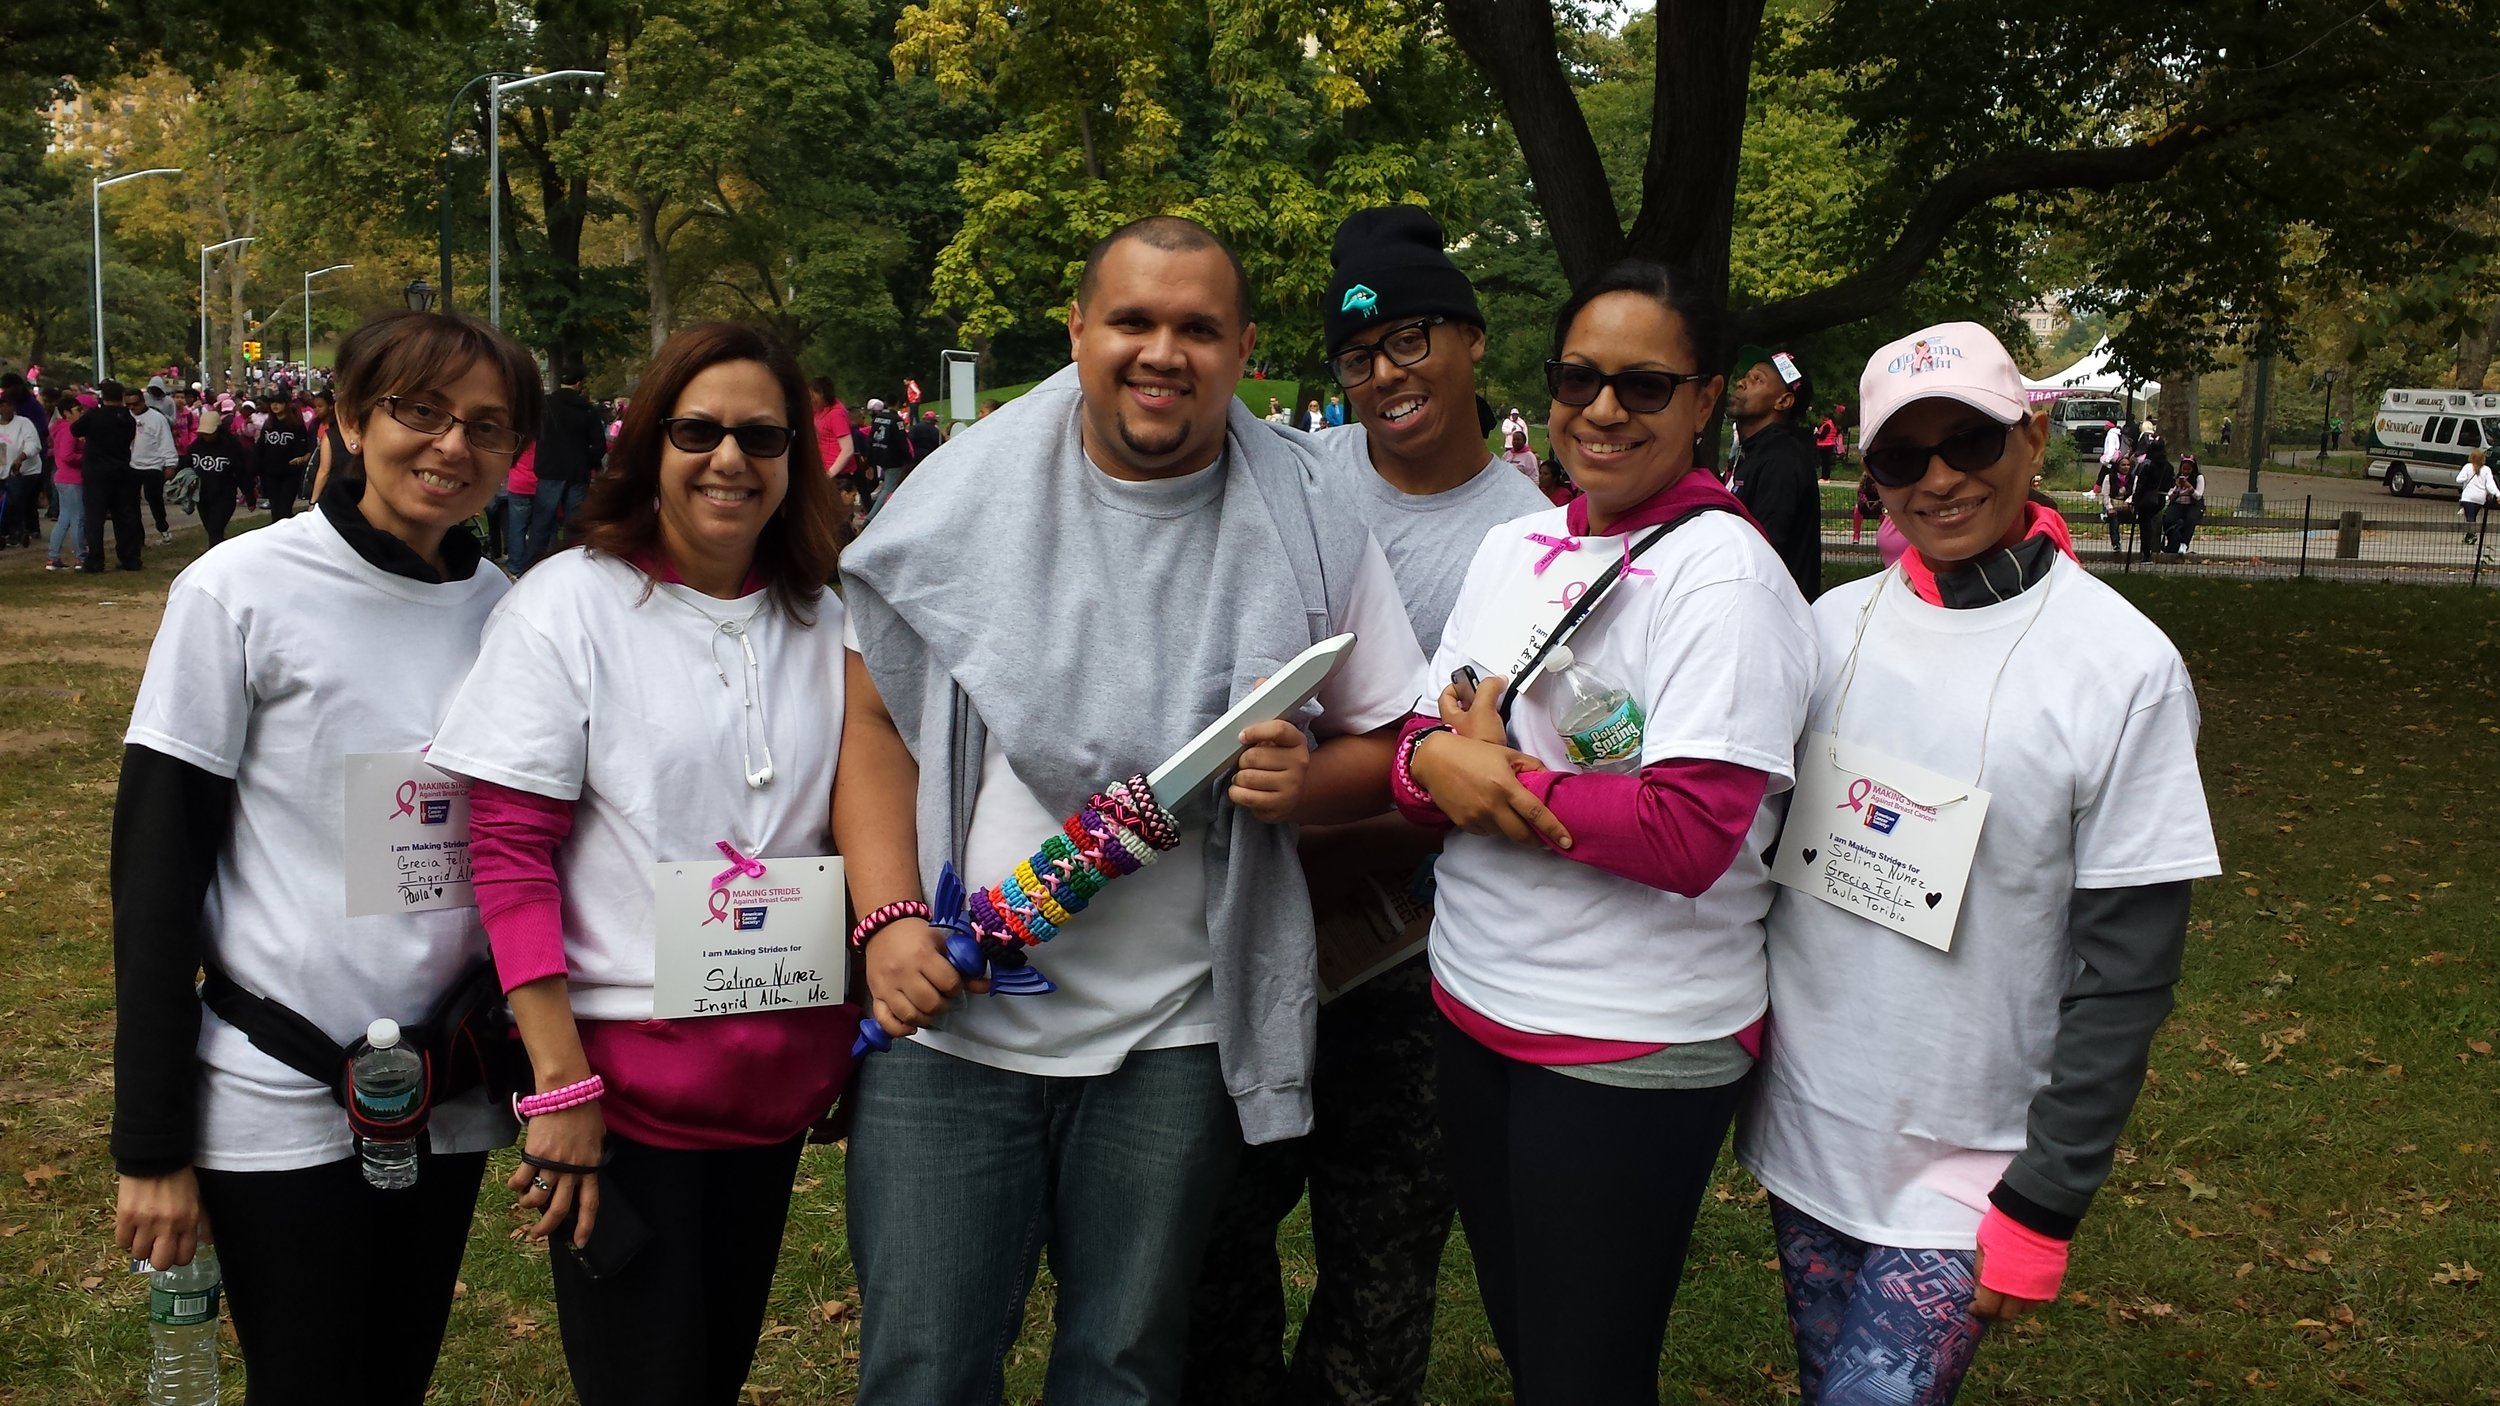 Jhairol_Feliz_Mysterious_Wicked_Fighters_Breast_Cancer_Pericords_Walk_New_York_Sword